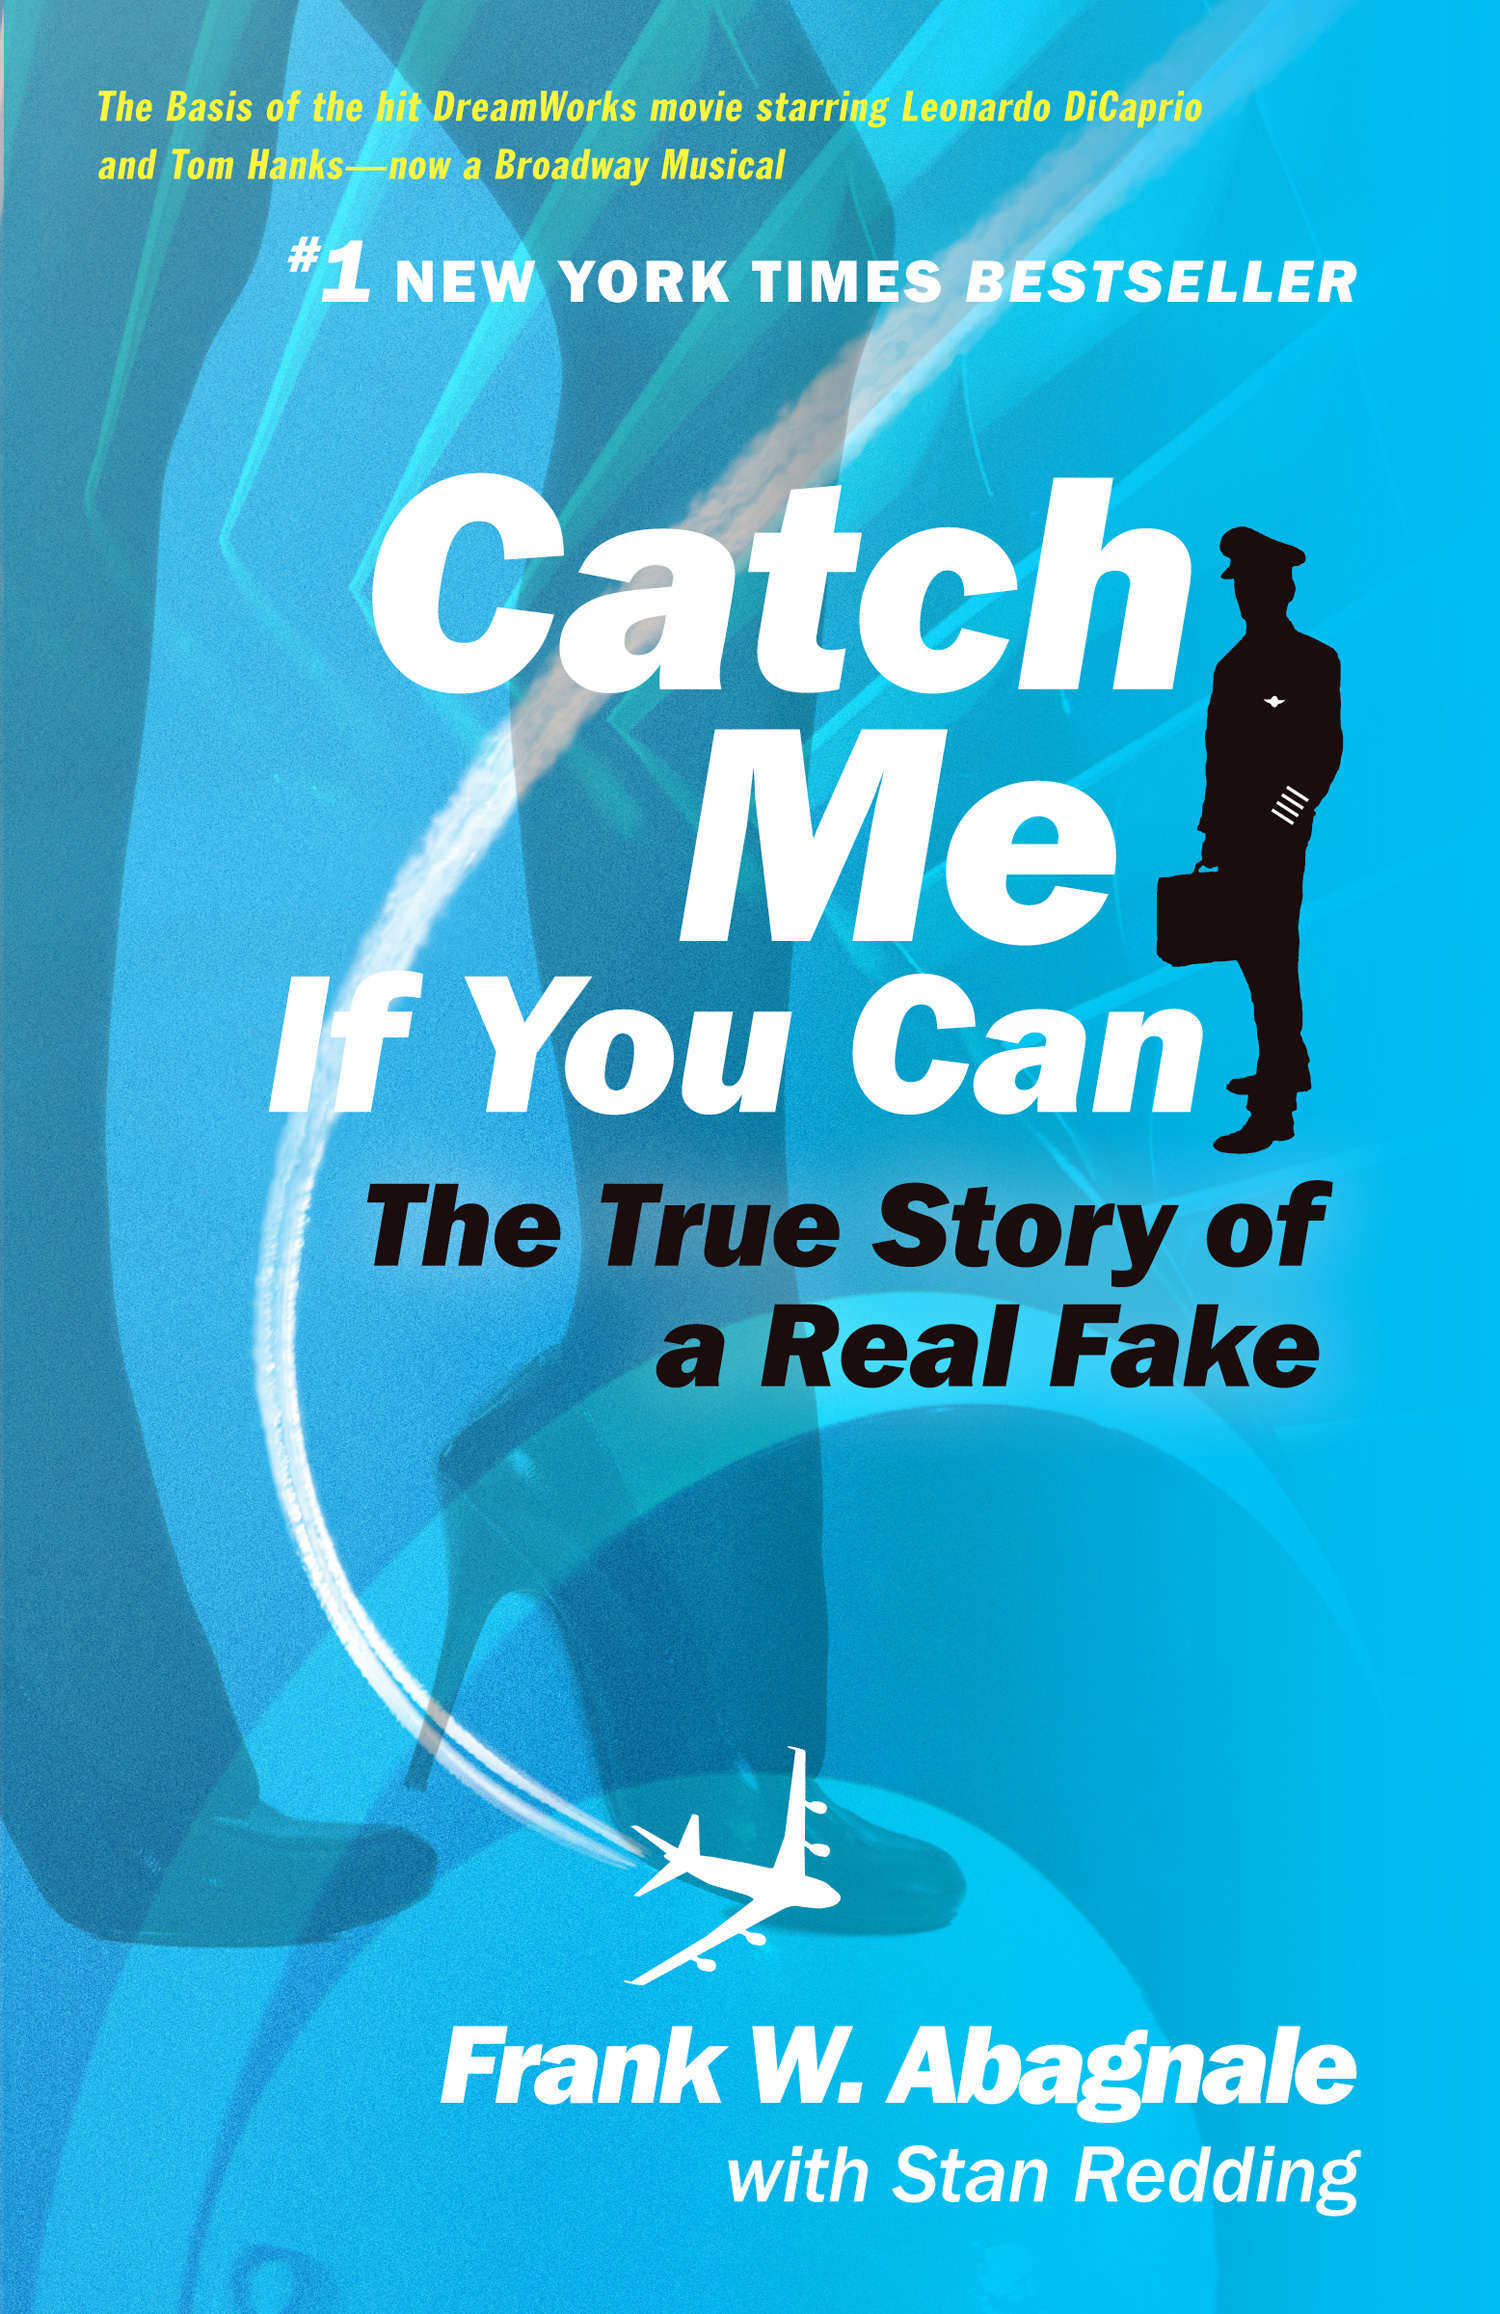 CATCH-ME-IF-YOU-CAN-ss6.jpg